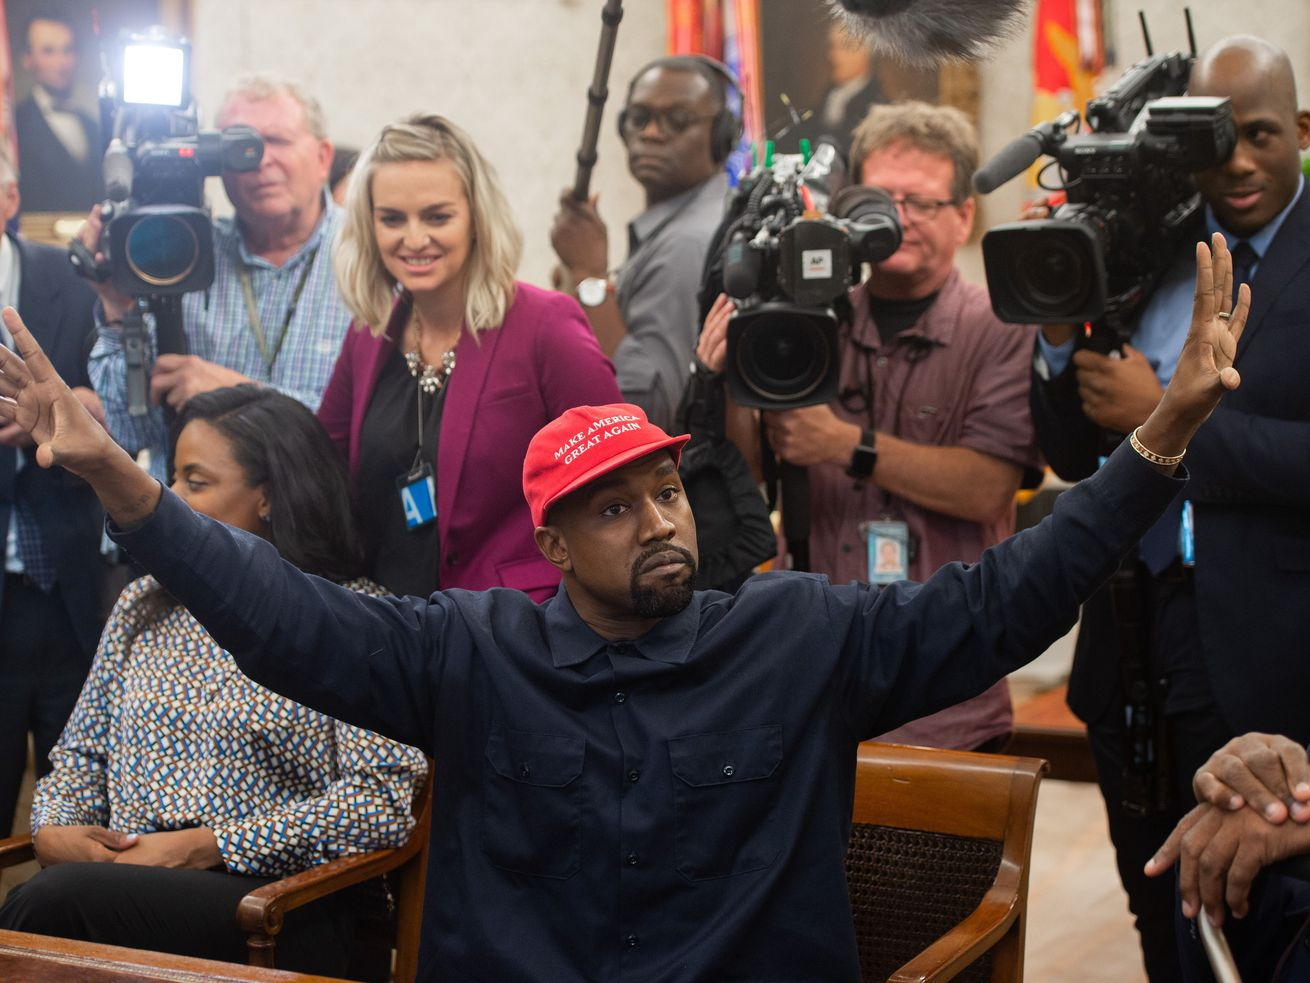 Kanye West during his meeting with President Donald Trump on October 11, 2018.